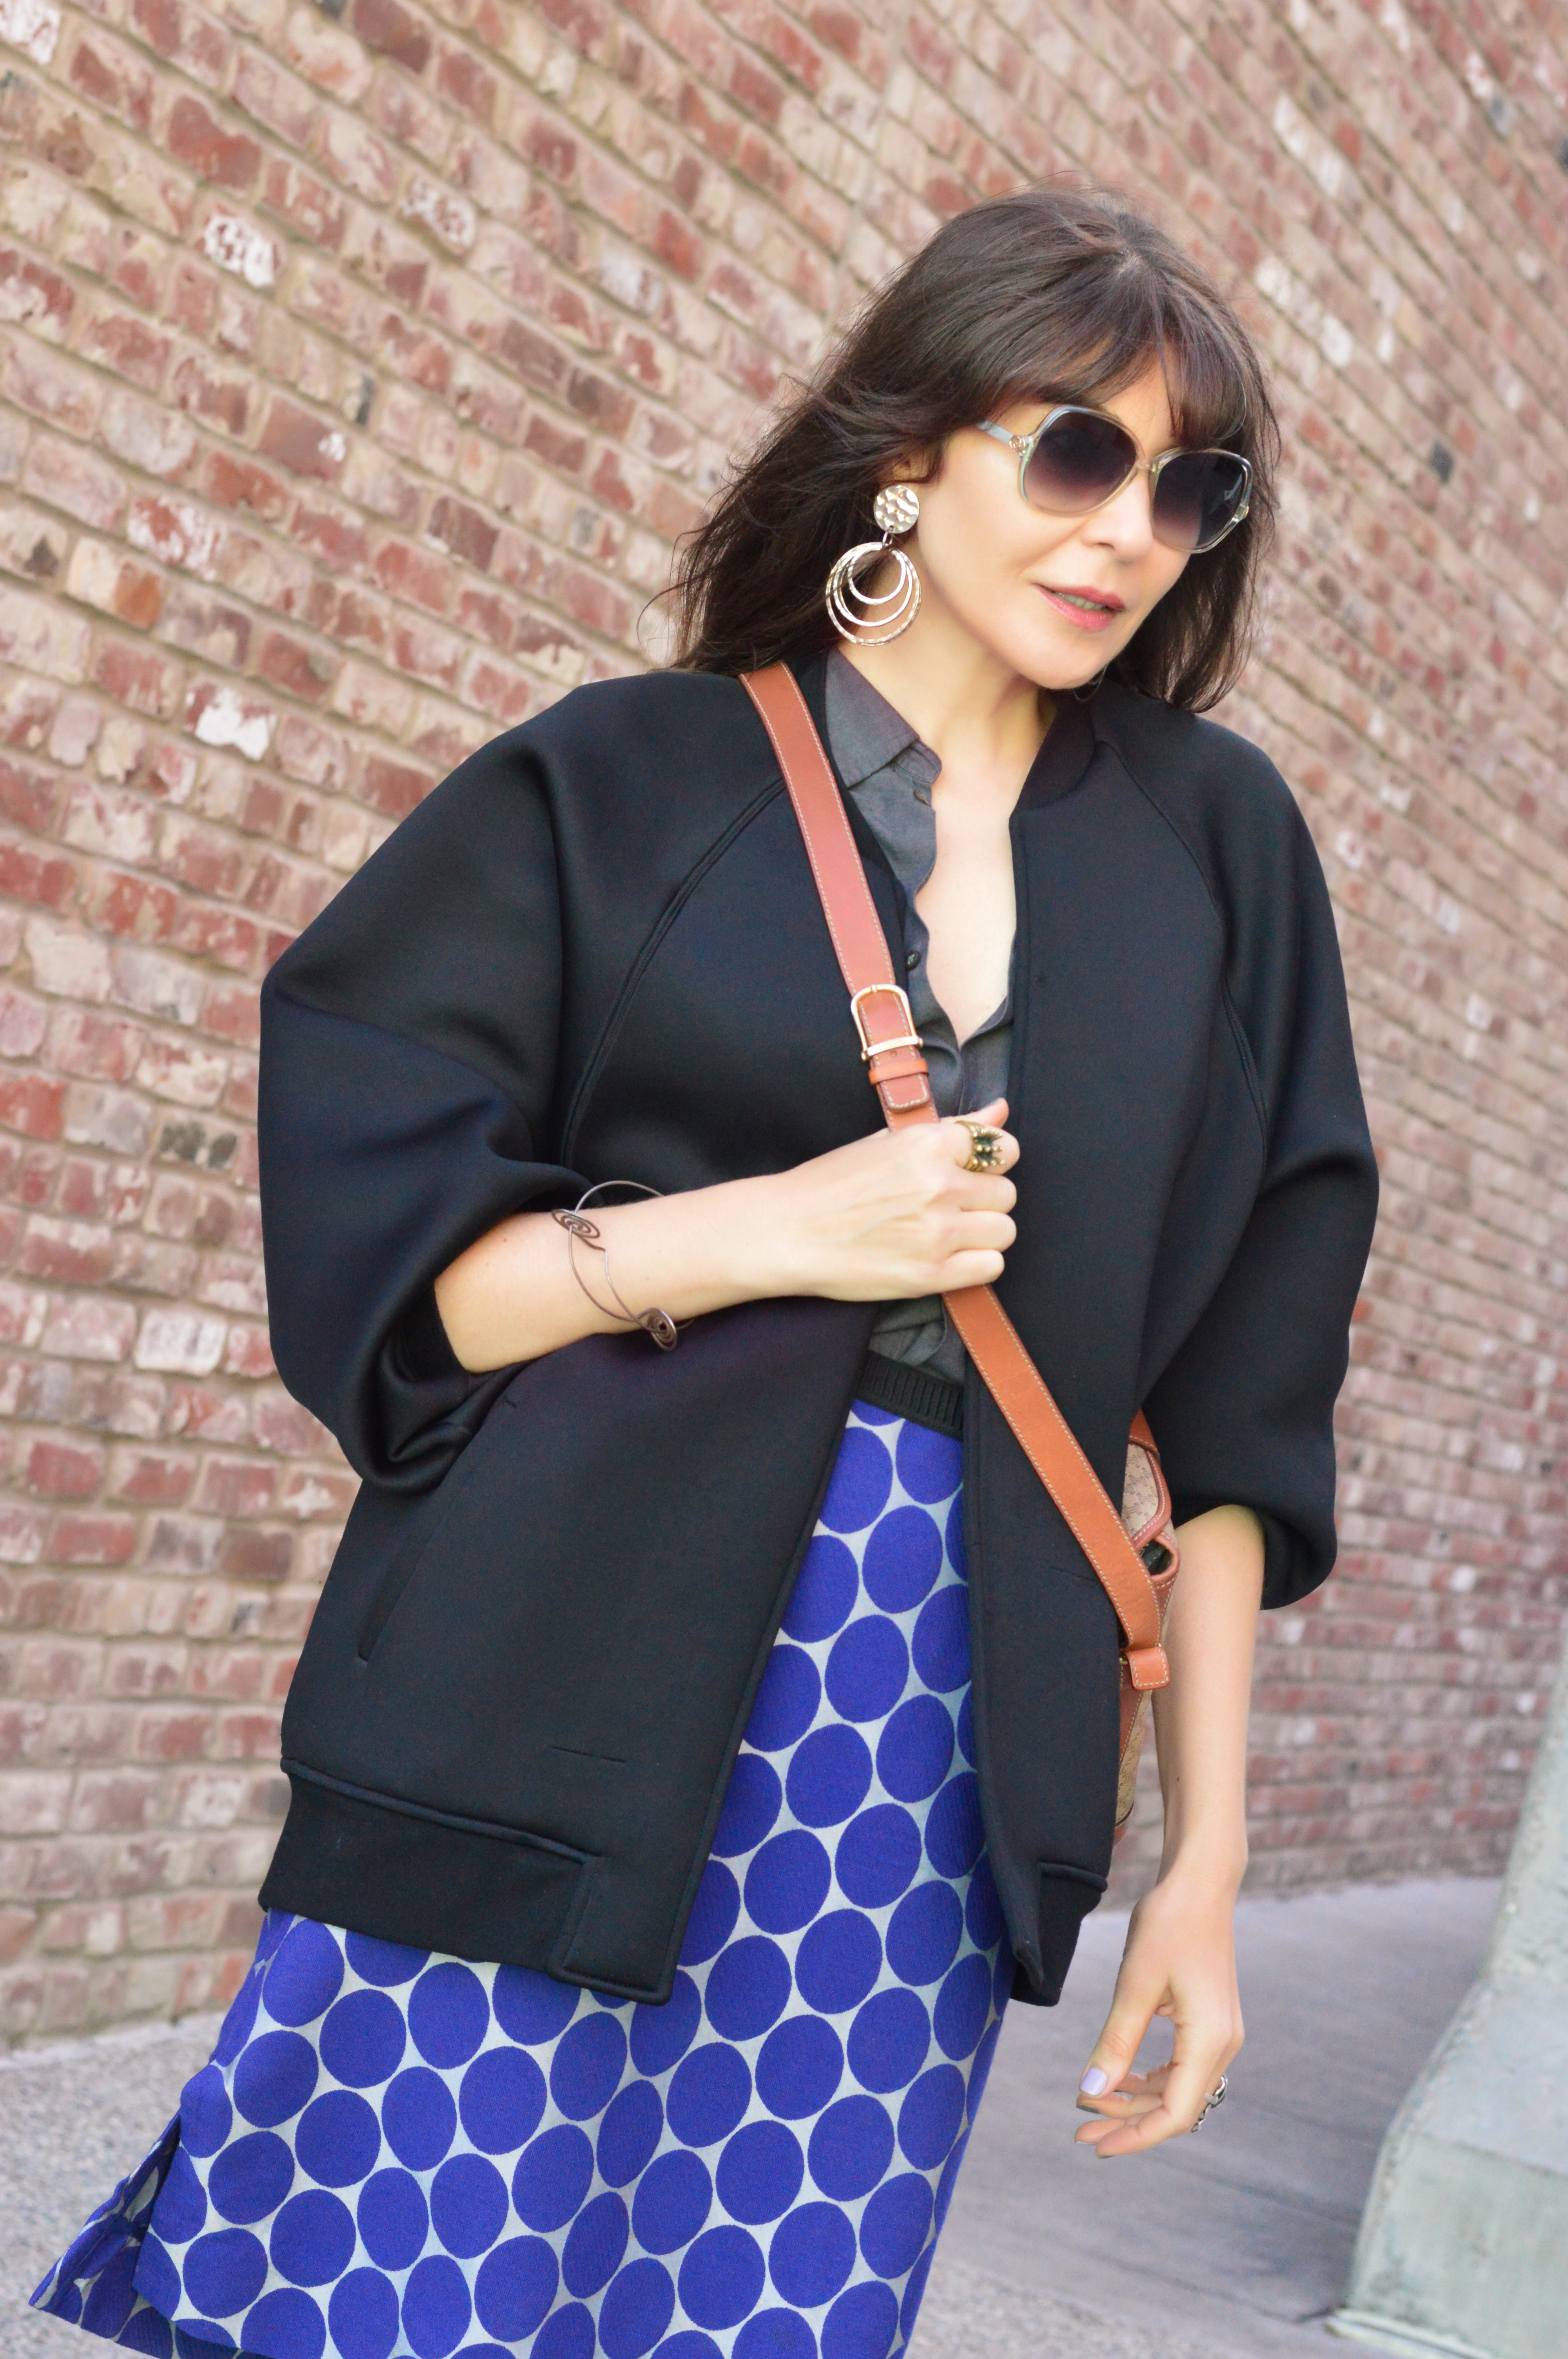 Bomber jacket and polka-dot skirt.